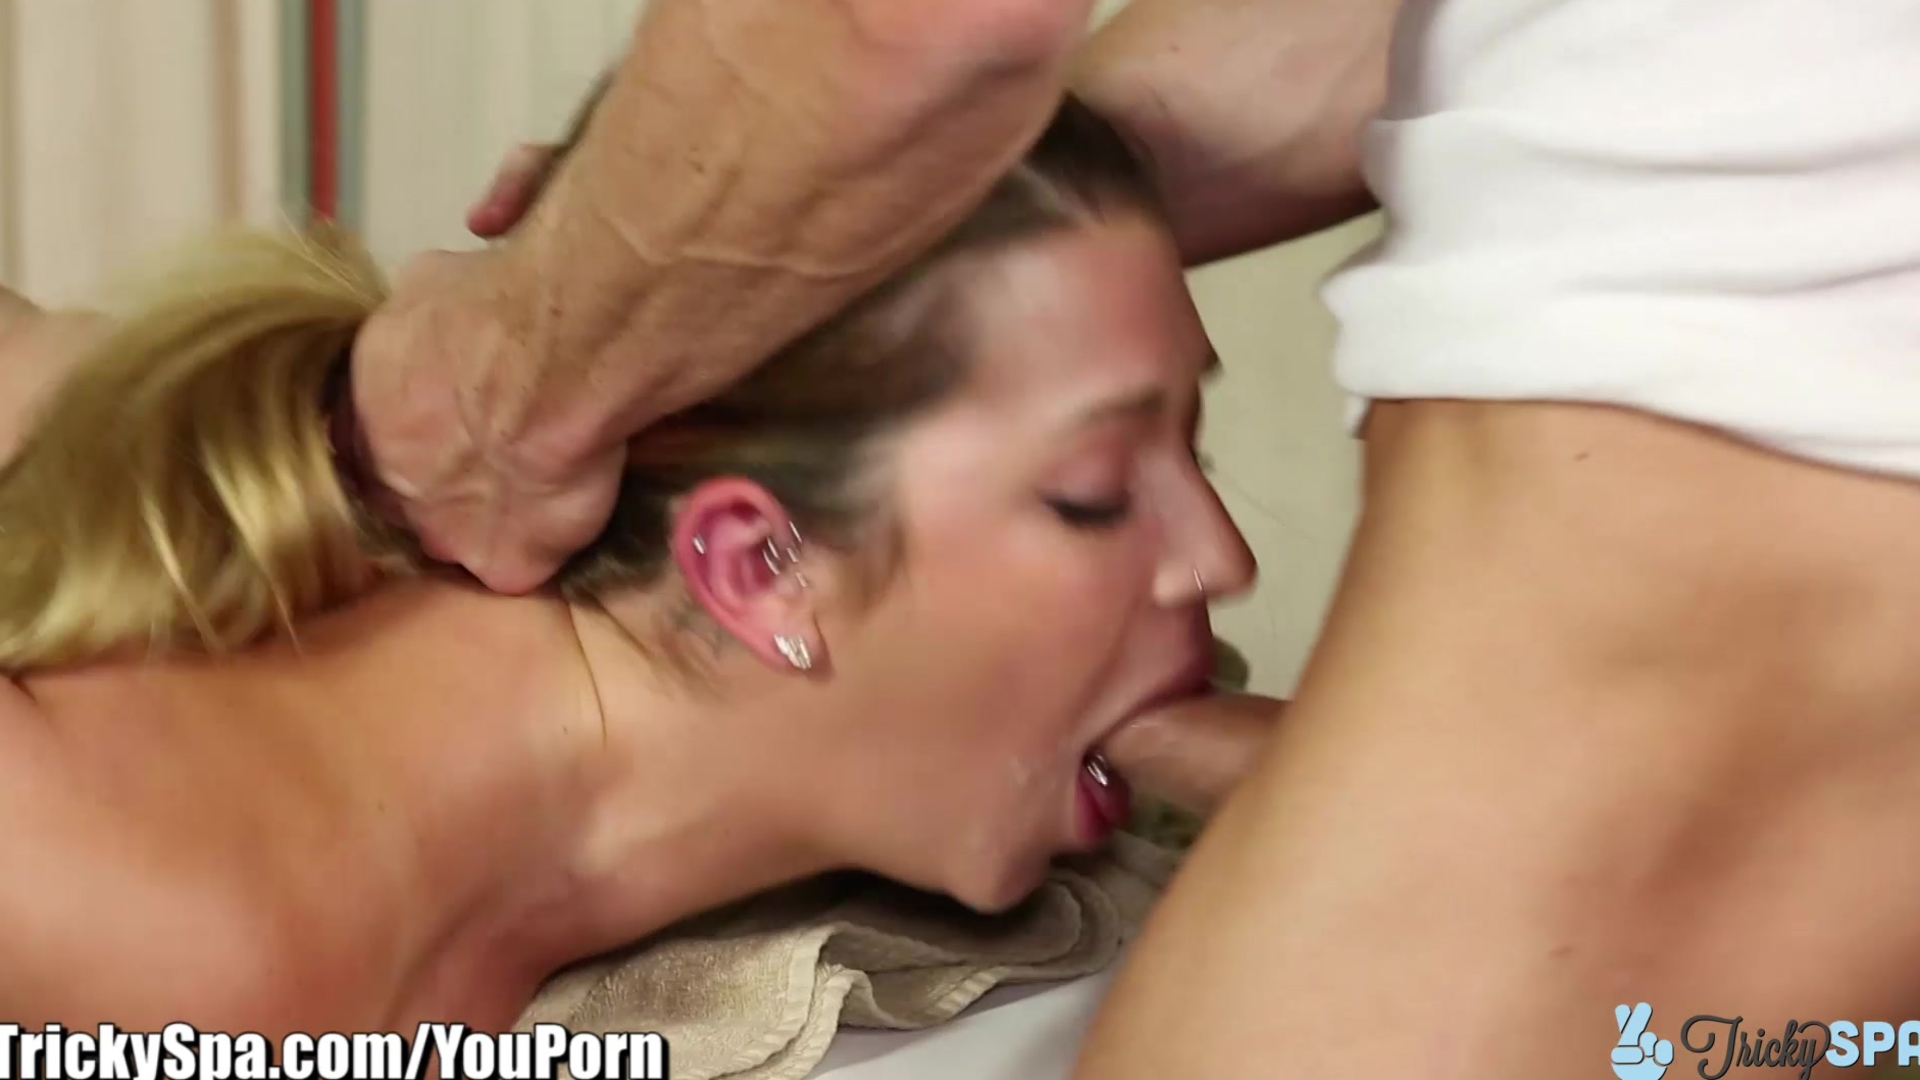 Hot women spreading thier ass holes